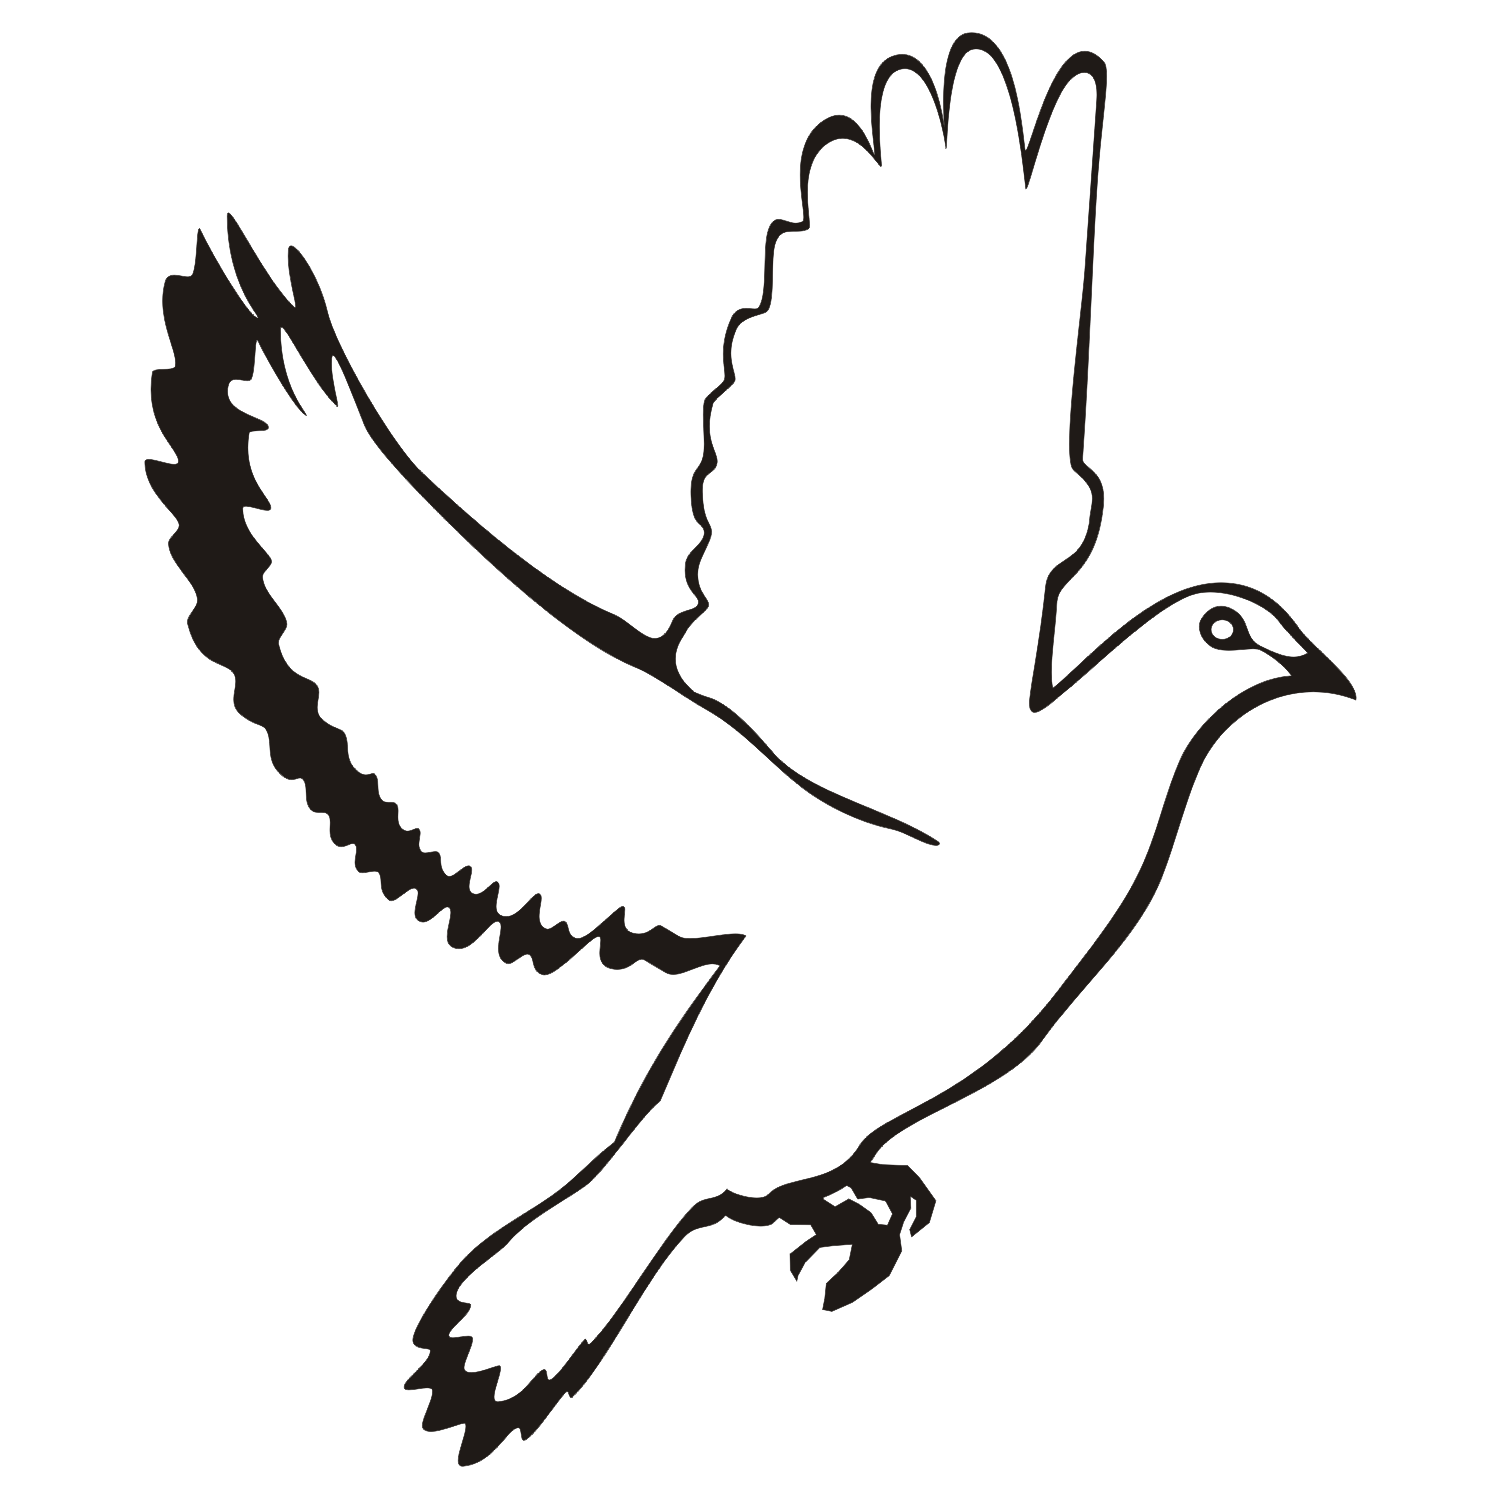 Dove Images Free - ClipArt Best